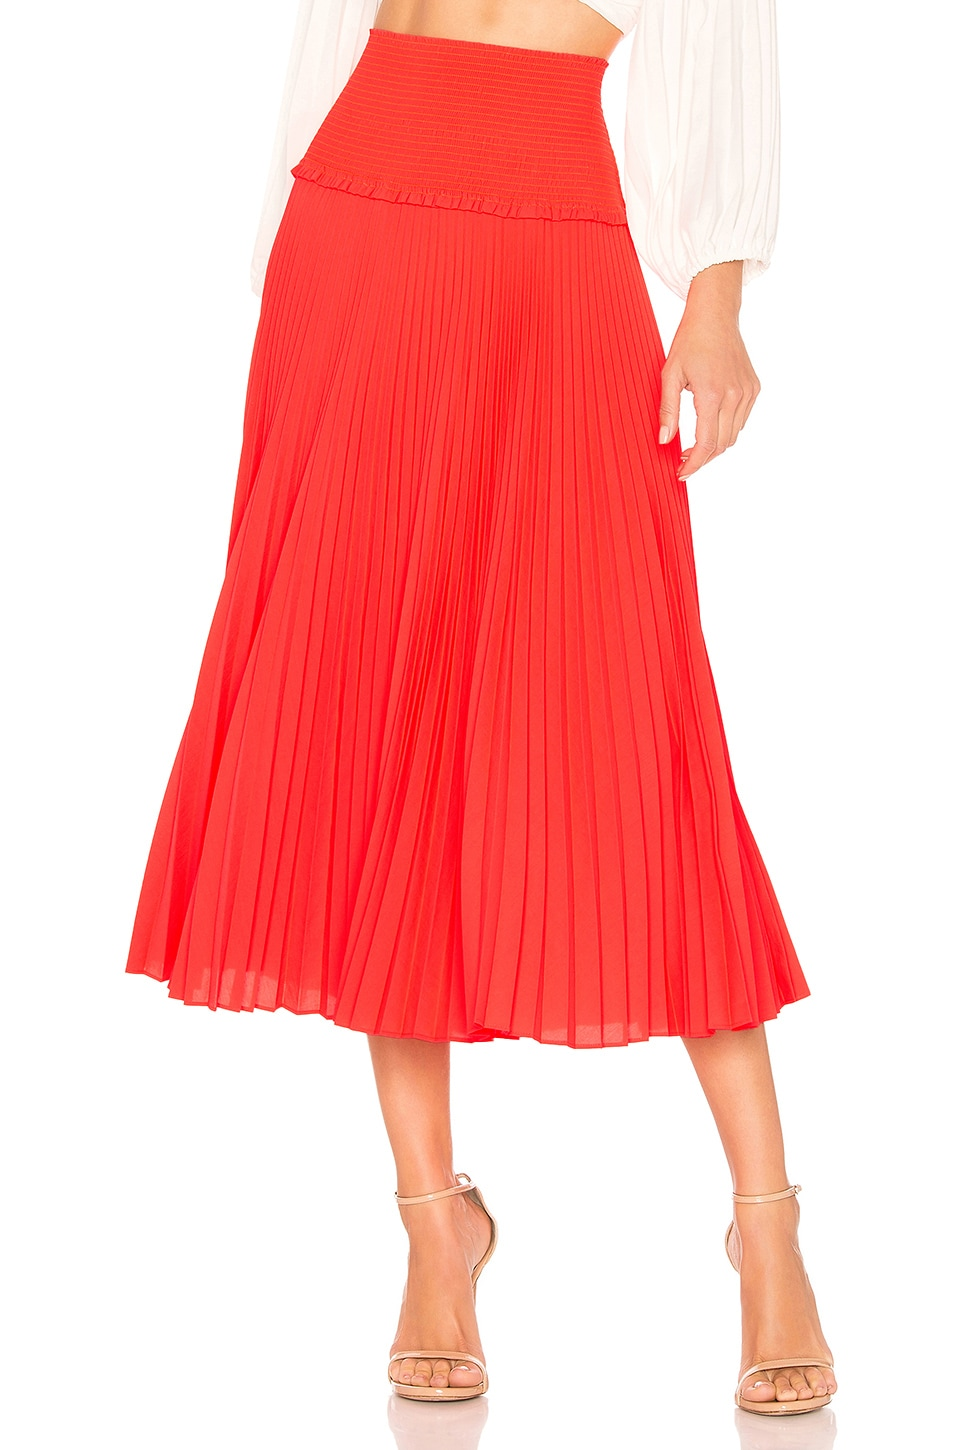 A.L.C. Hedrin Skirt in Neon Orange